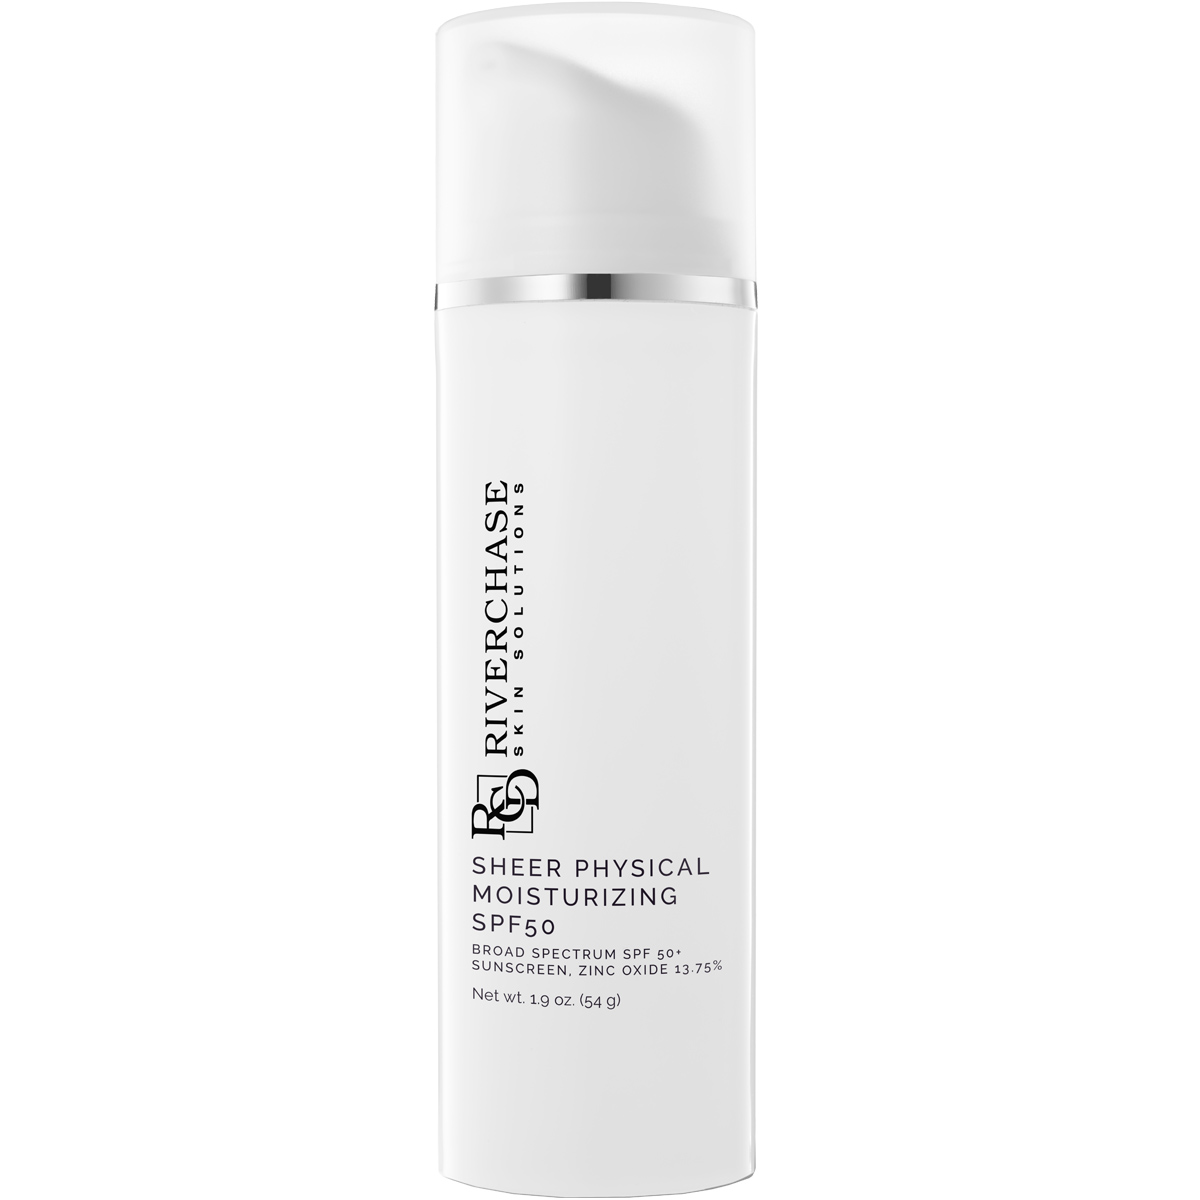 Is gentle on sensitive and acne prone skin, and provides broad spectrum protection against UVA and UVB rays.